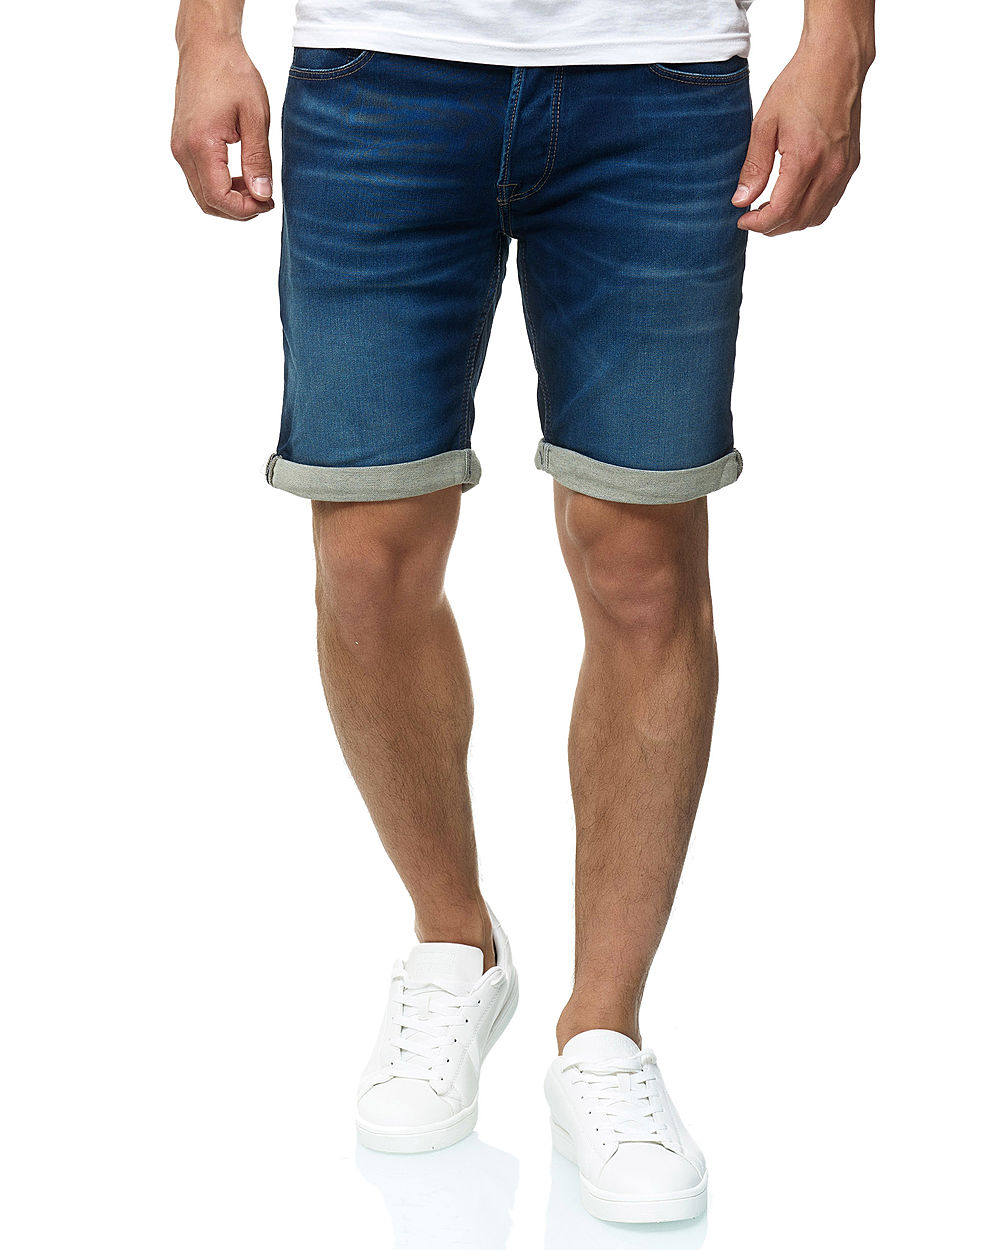 Jack and Jones Herren Denim Bermuda Jeans Shorts 5-Pockets dunkel blau denim - Art.-Nr.: 19072745-S-DN